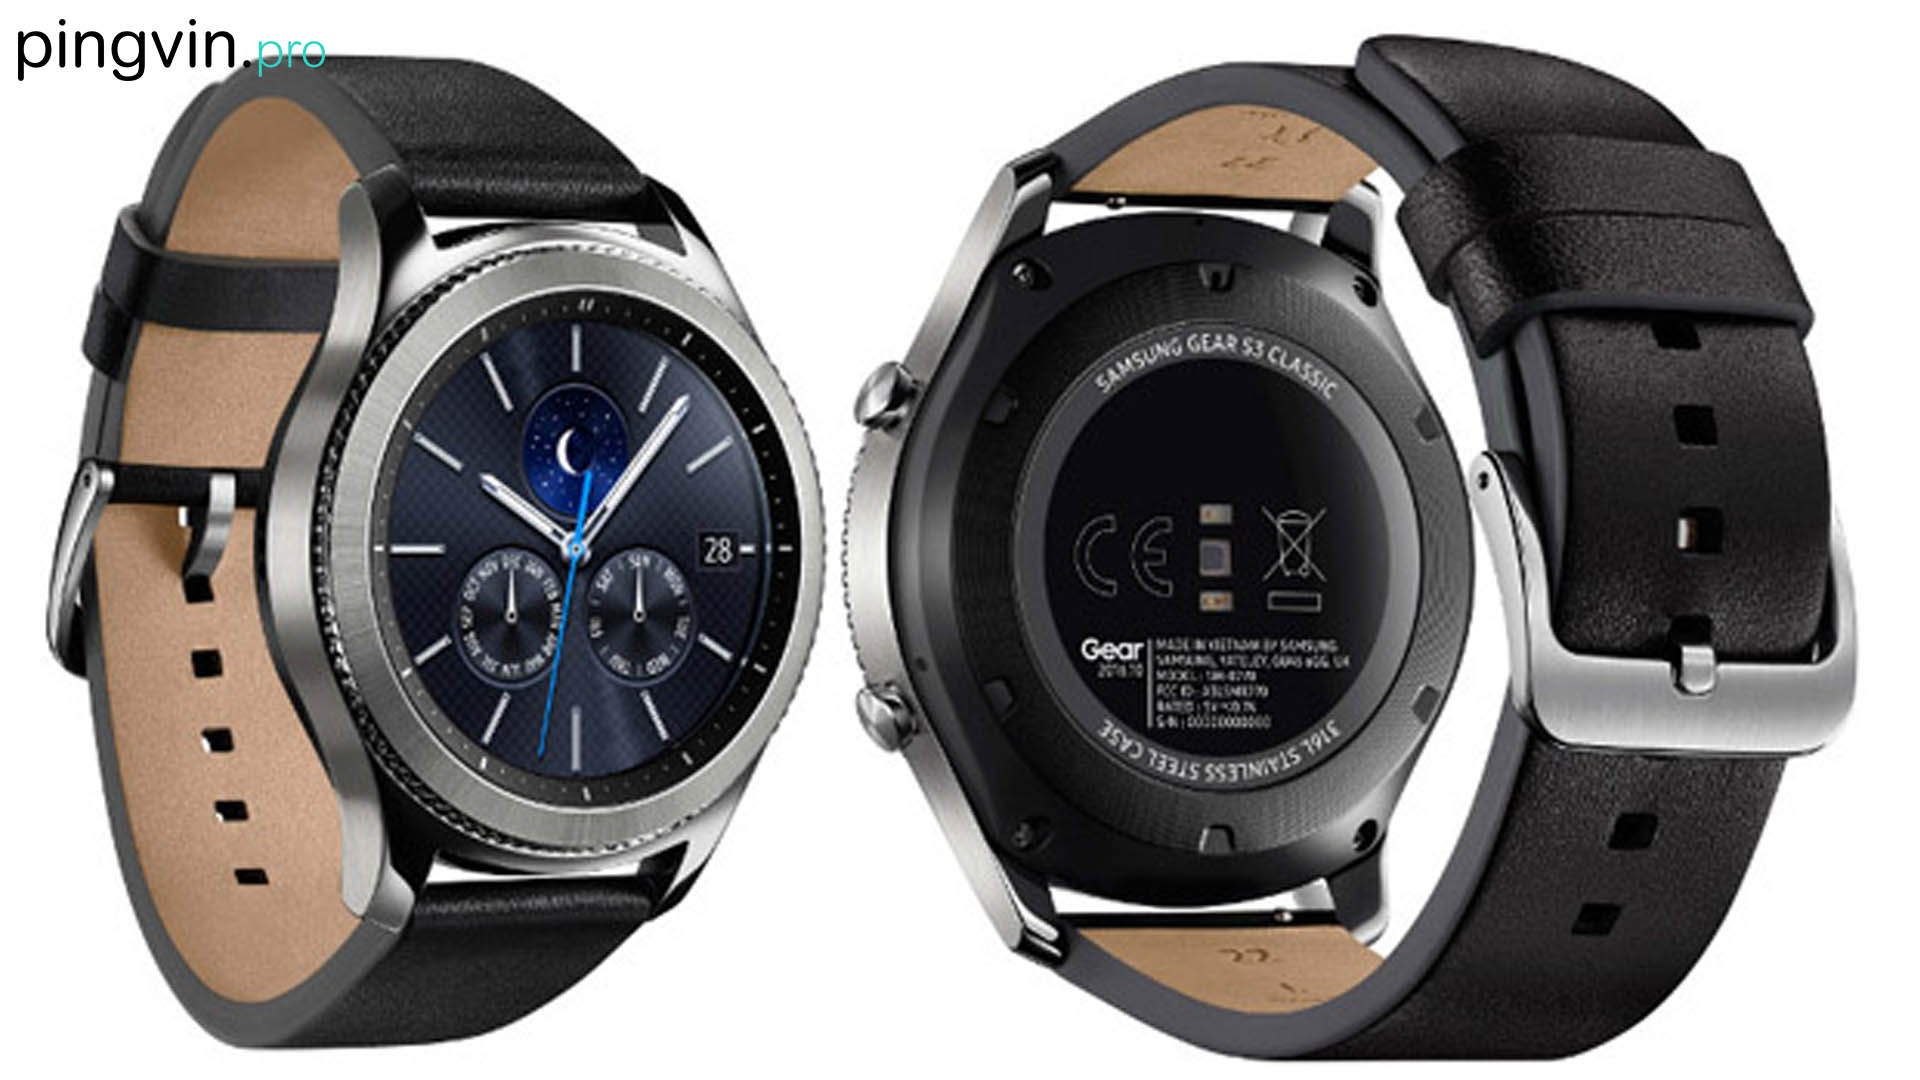 samsung gear s3 classic. Black Bedroom Furniture Sets. Home Design Ideas